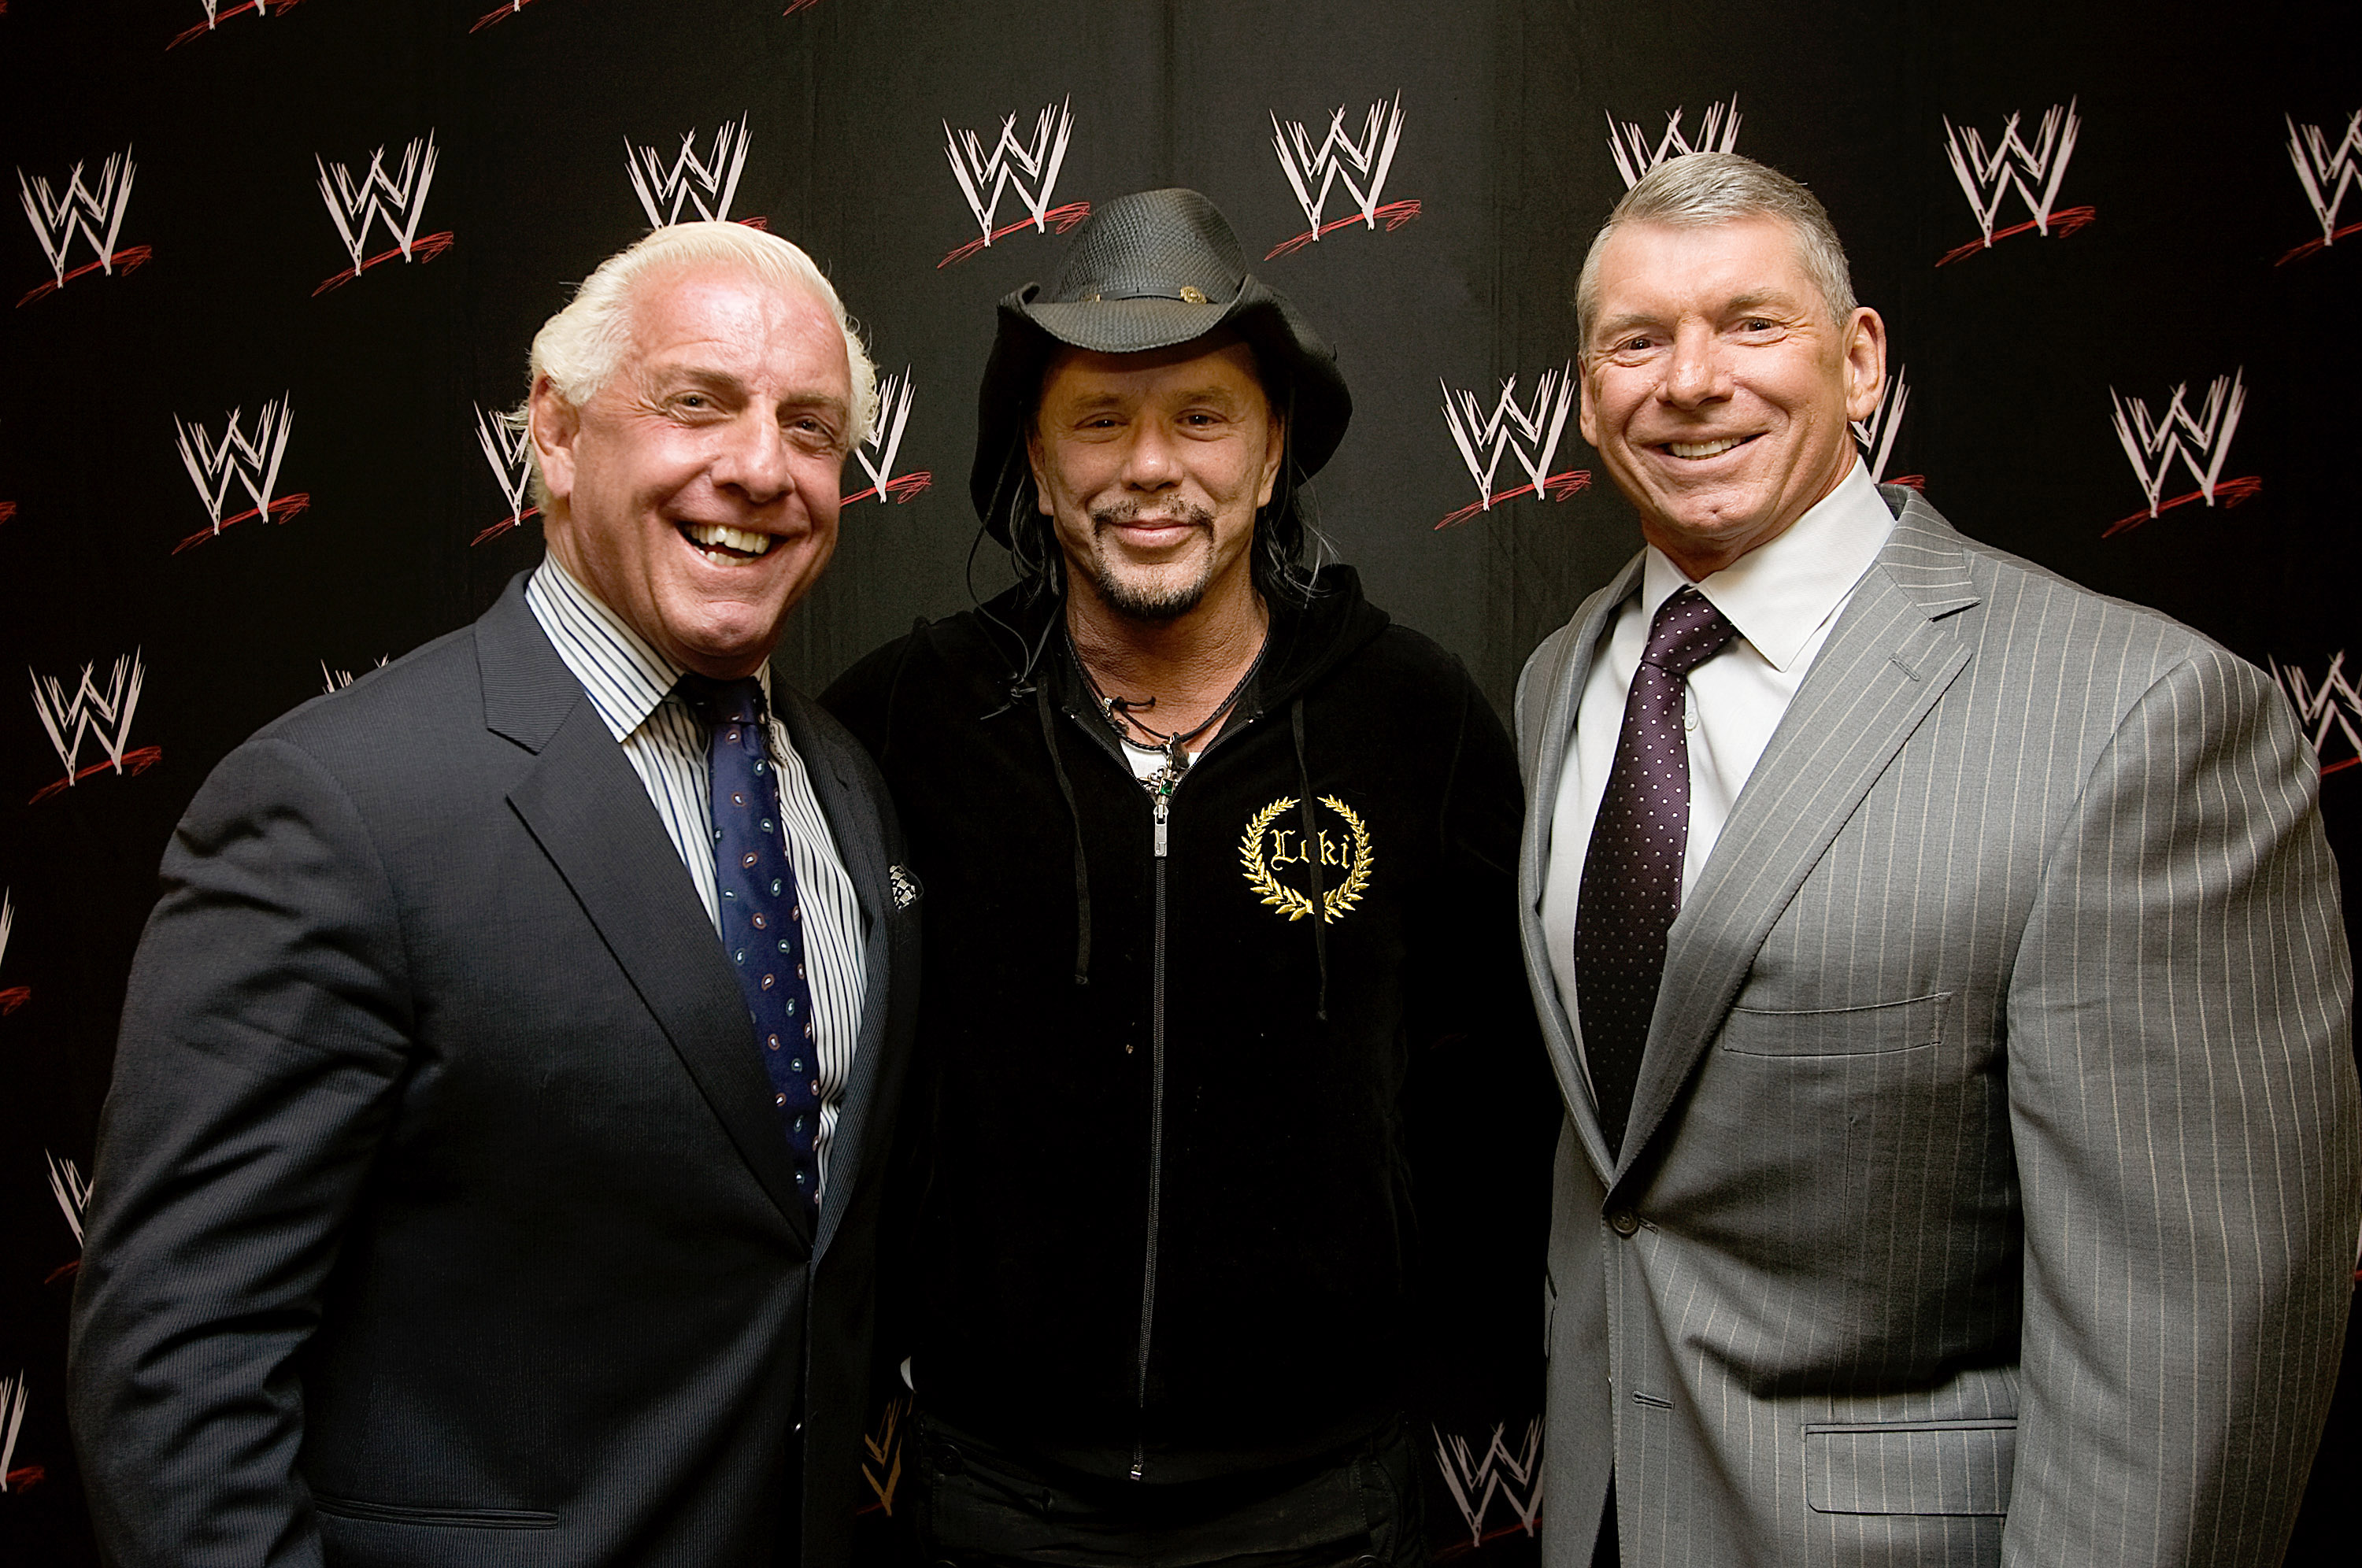 Ric Flair, Mickey Rourke & Vince McMahon